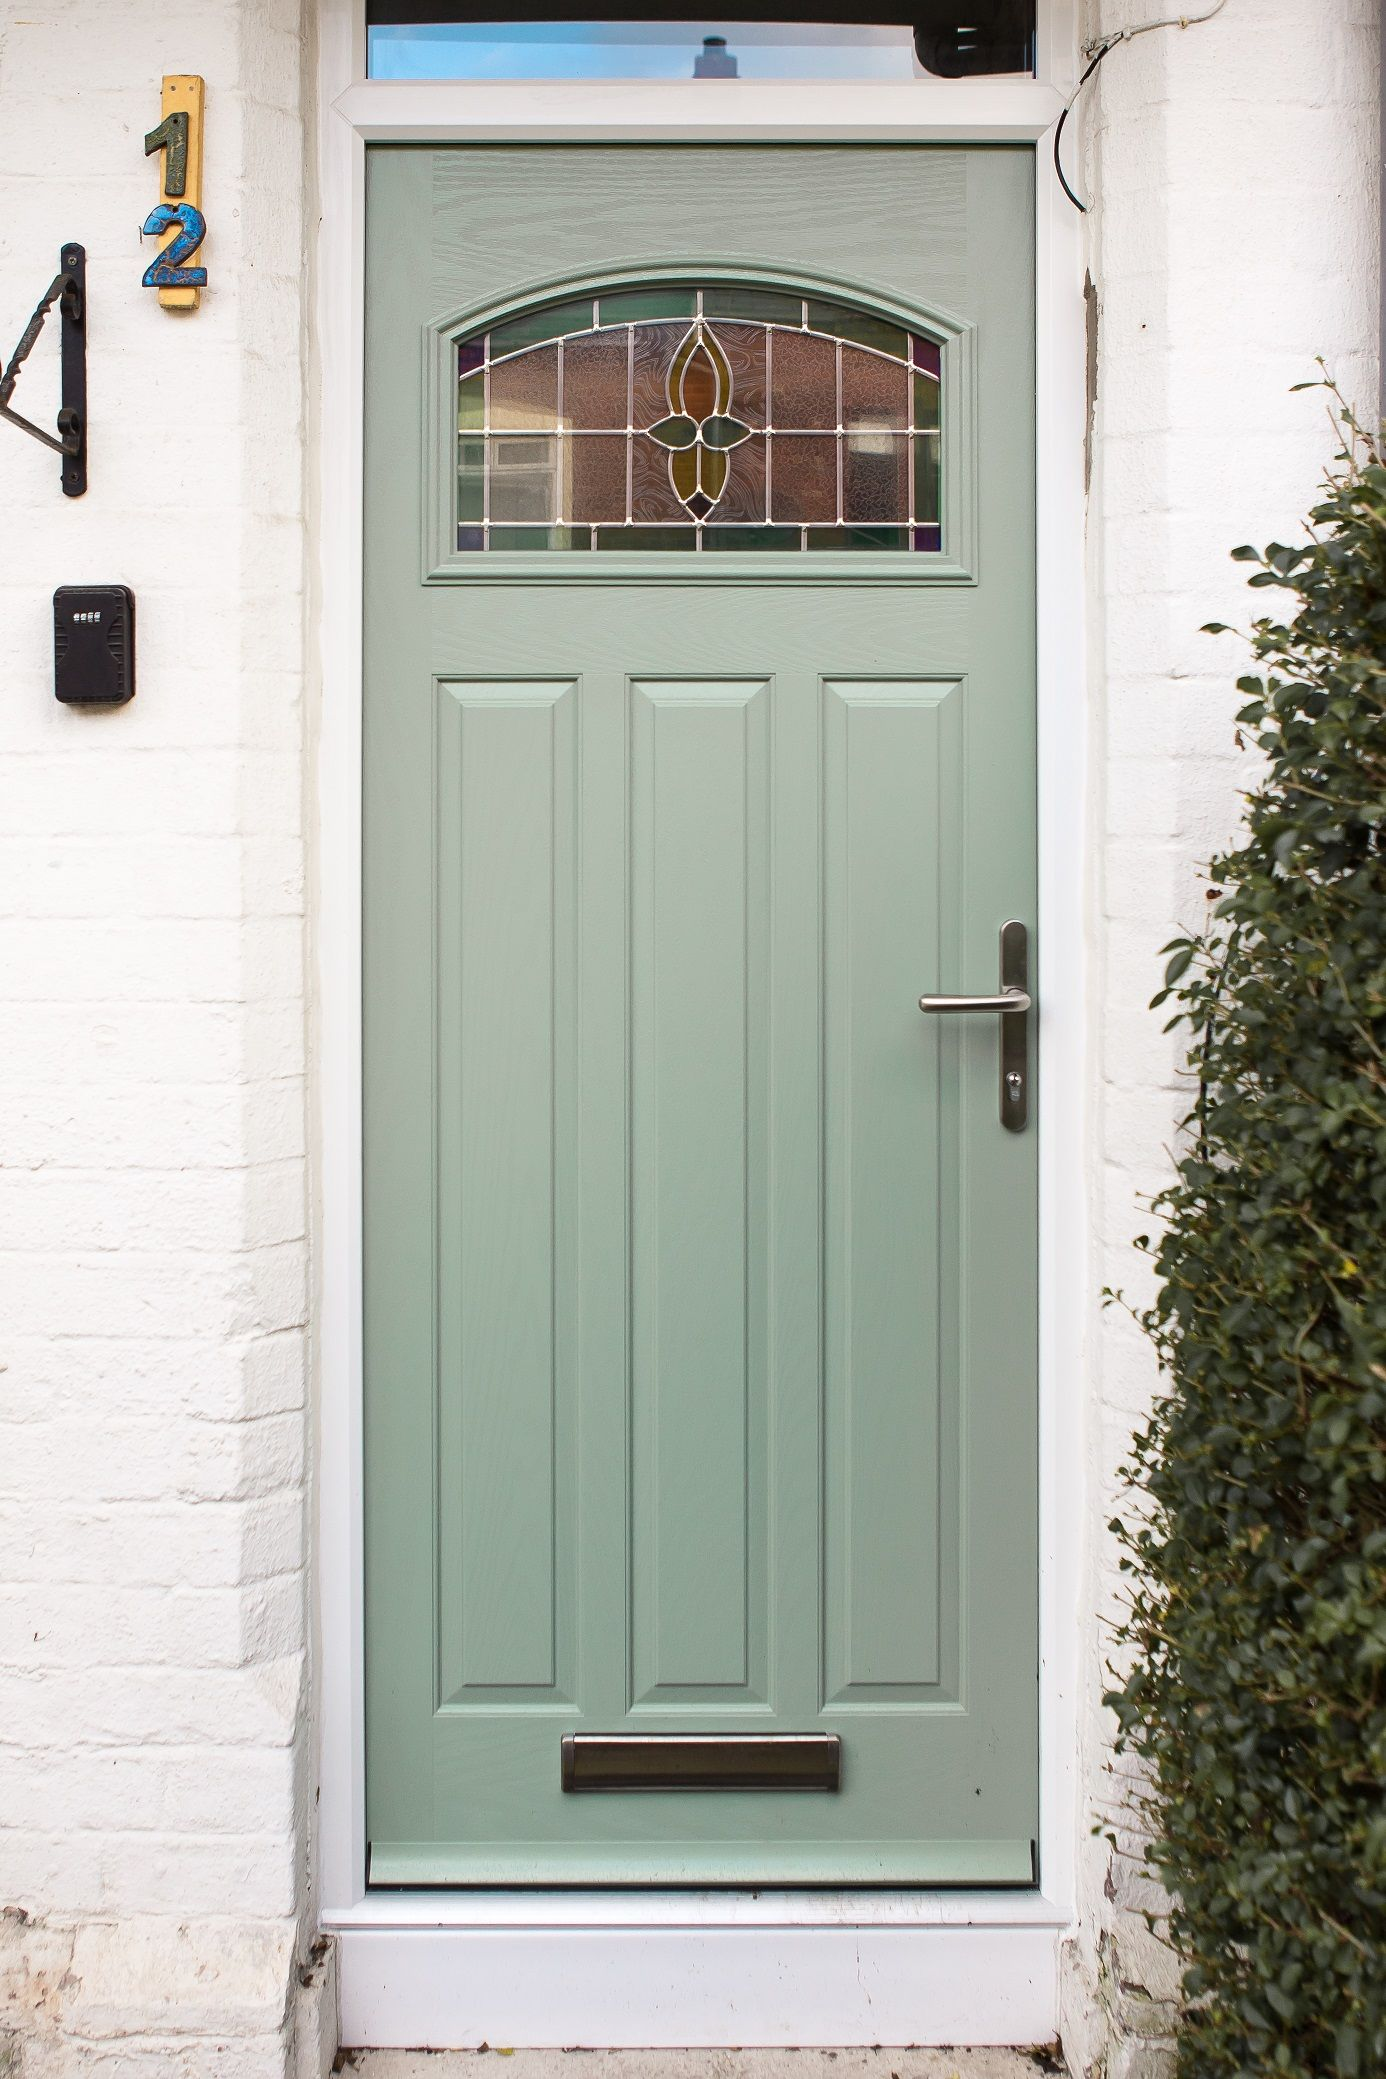 Virtuoso Malton composite door in Sage Green. Available from ...